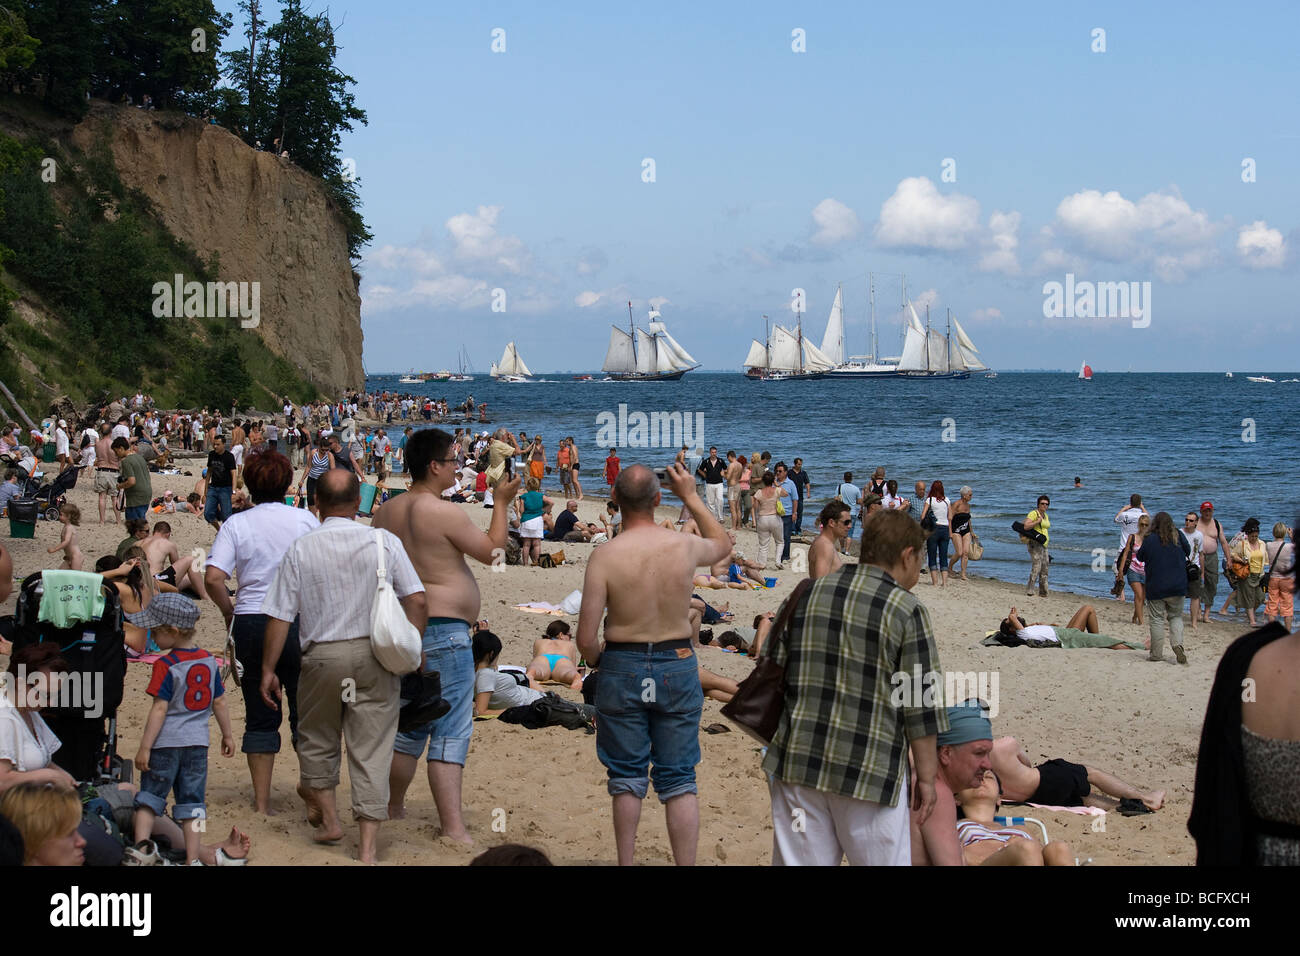 Photographs from Tall Ships Races 2009 beginning parade in Gdynia, Orlowo. A lots of people were watching at beautiful - Stock Image